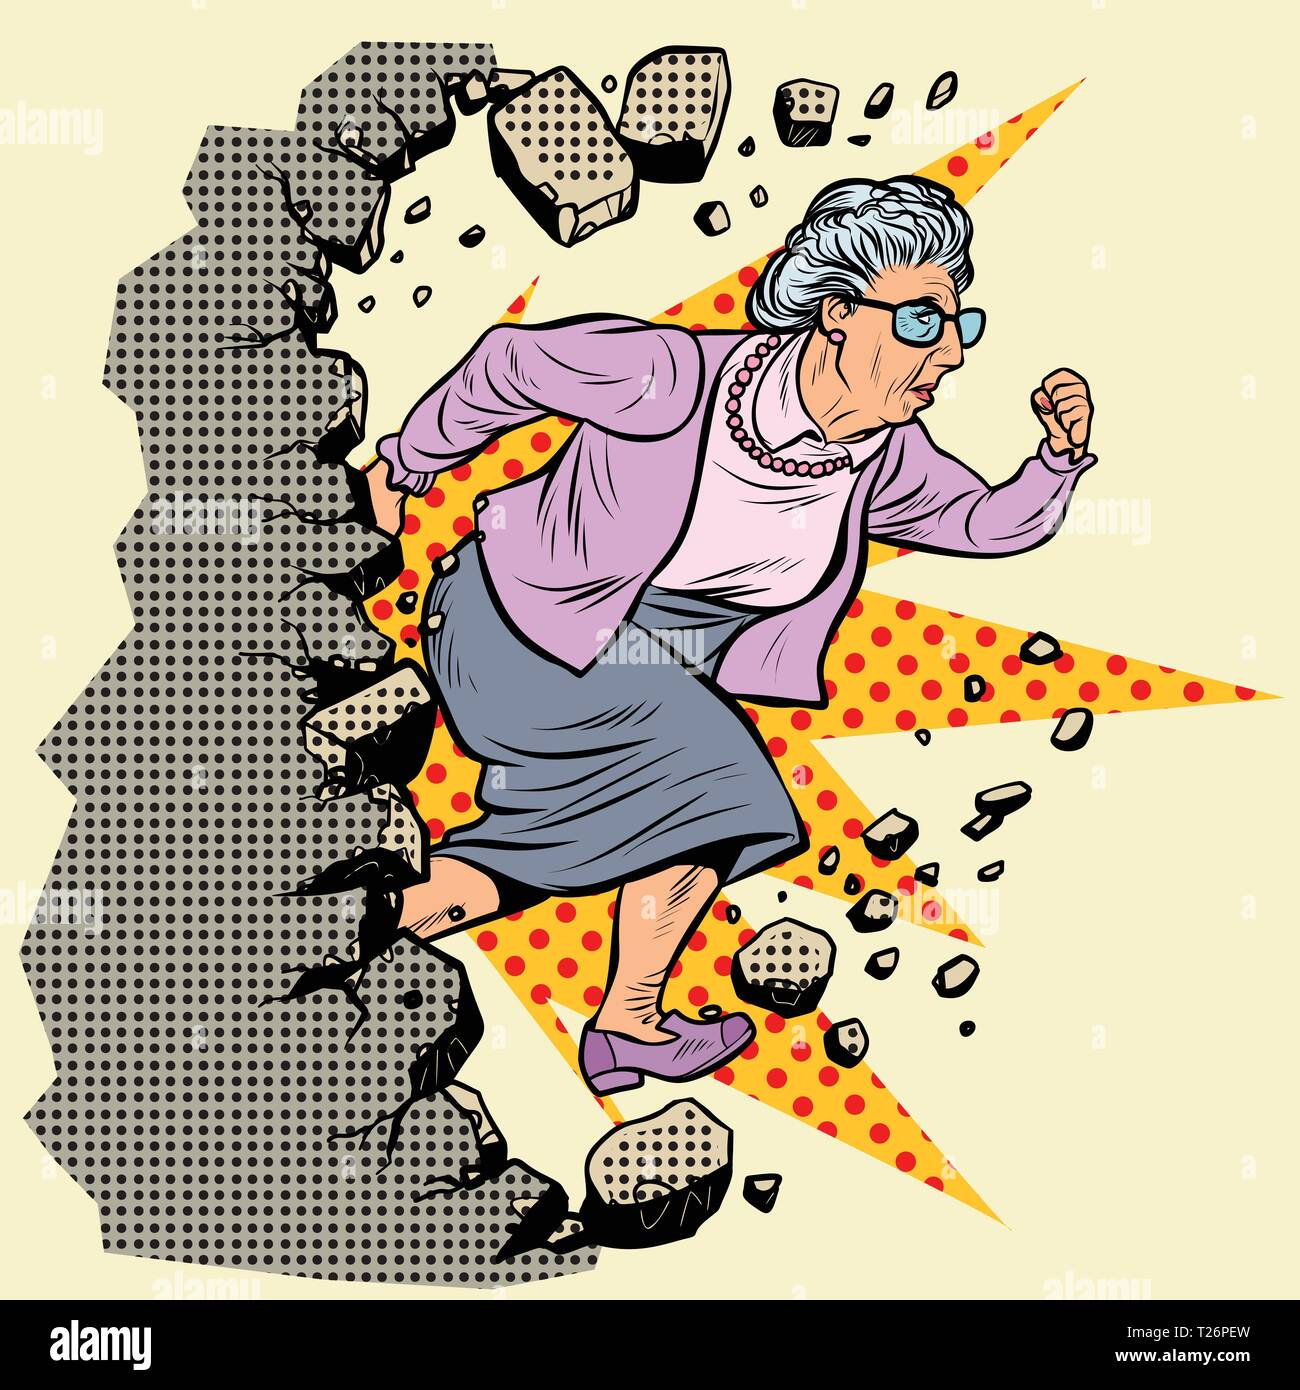 active old Granny pensioner breaks the wall of stereotypes. Moving forward, personal development. Pop art retro vector illustration vintage kitsch - Stock Vector